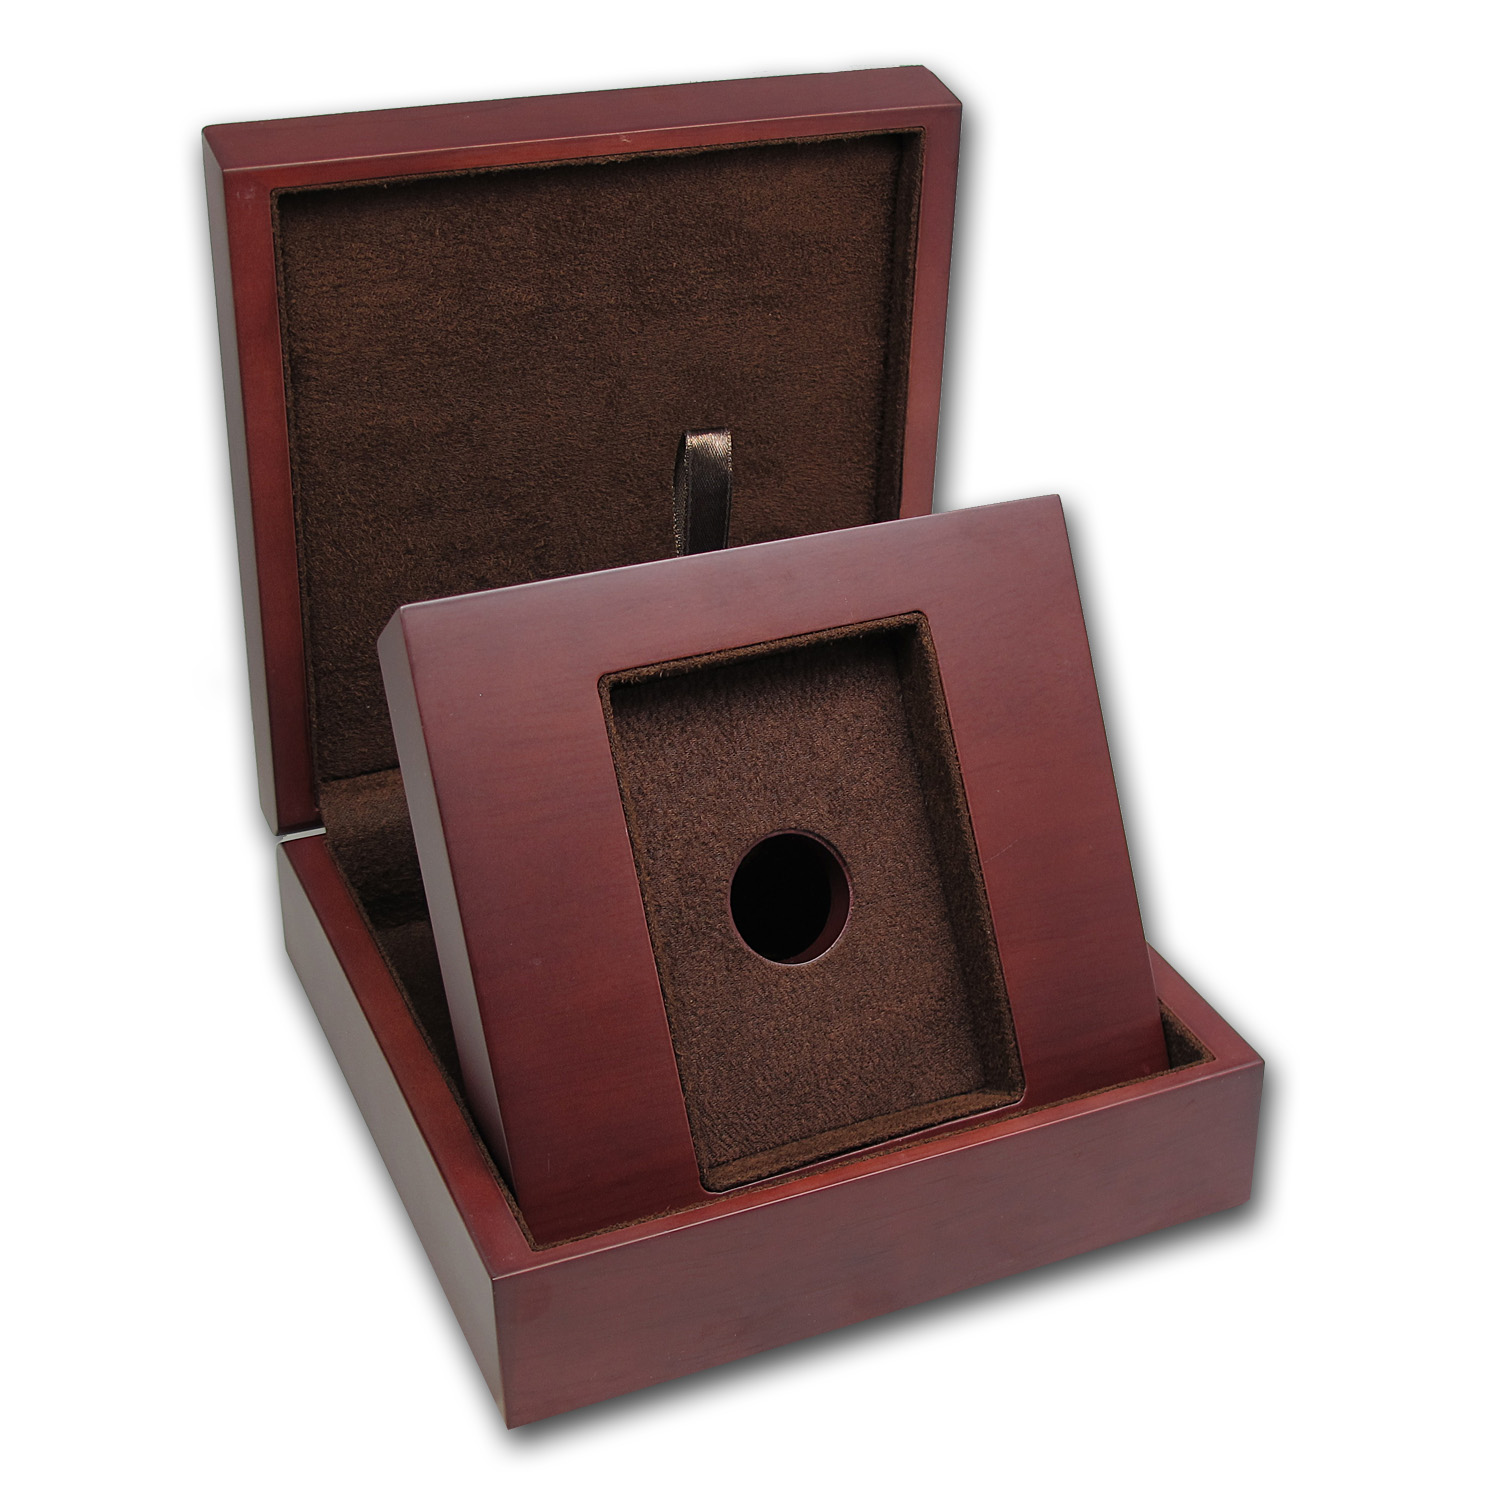 APMEX Wood Presentation Box - Pamp Gold/Silver 5oz - 10oz Bar